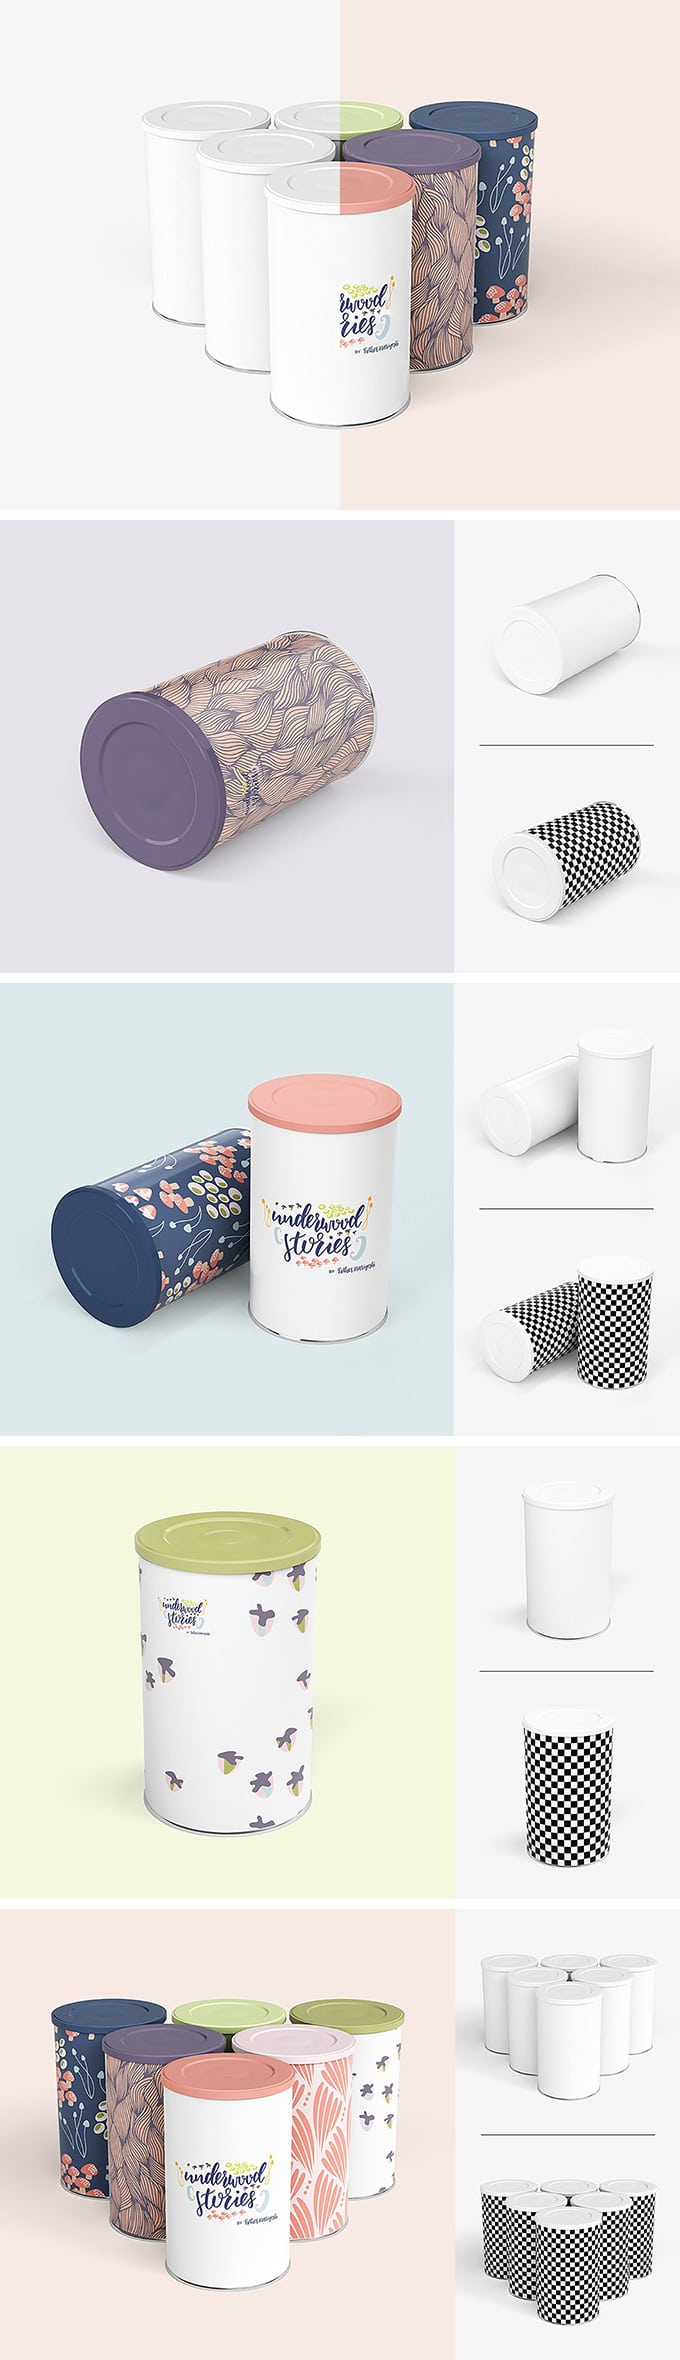 Round Tin Cans Mockup